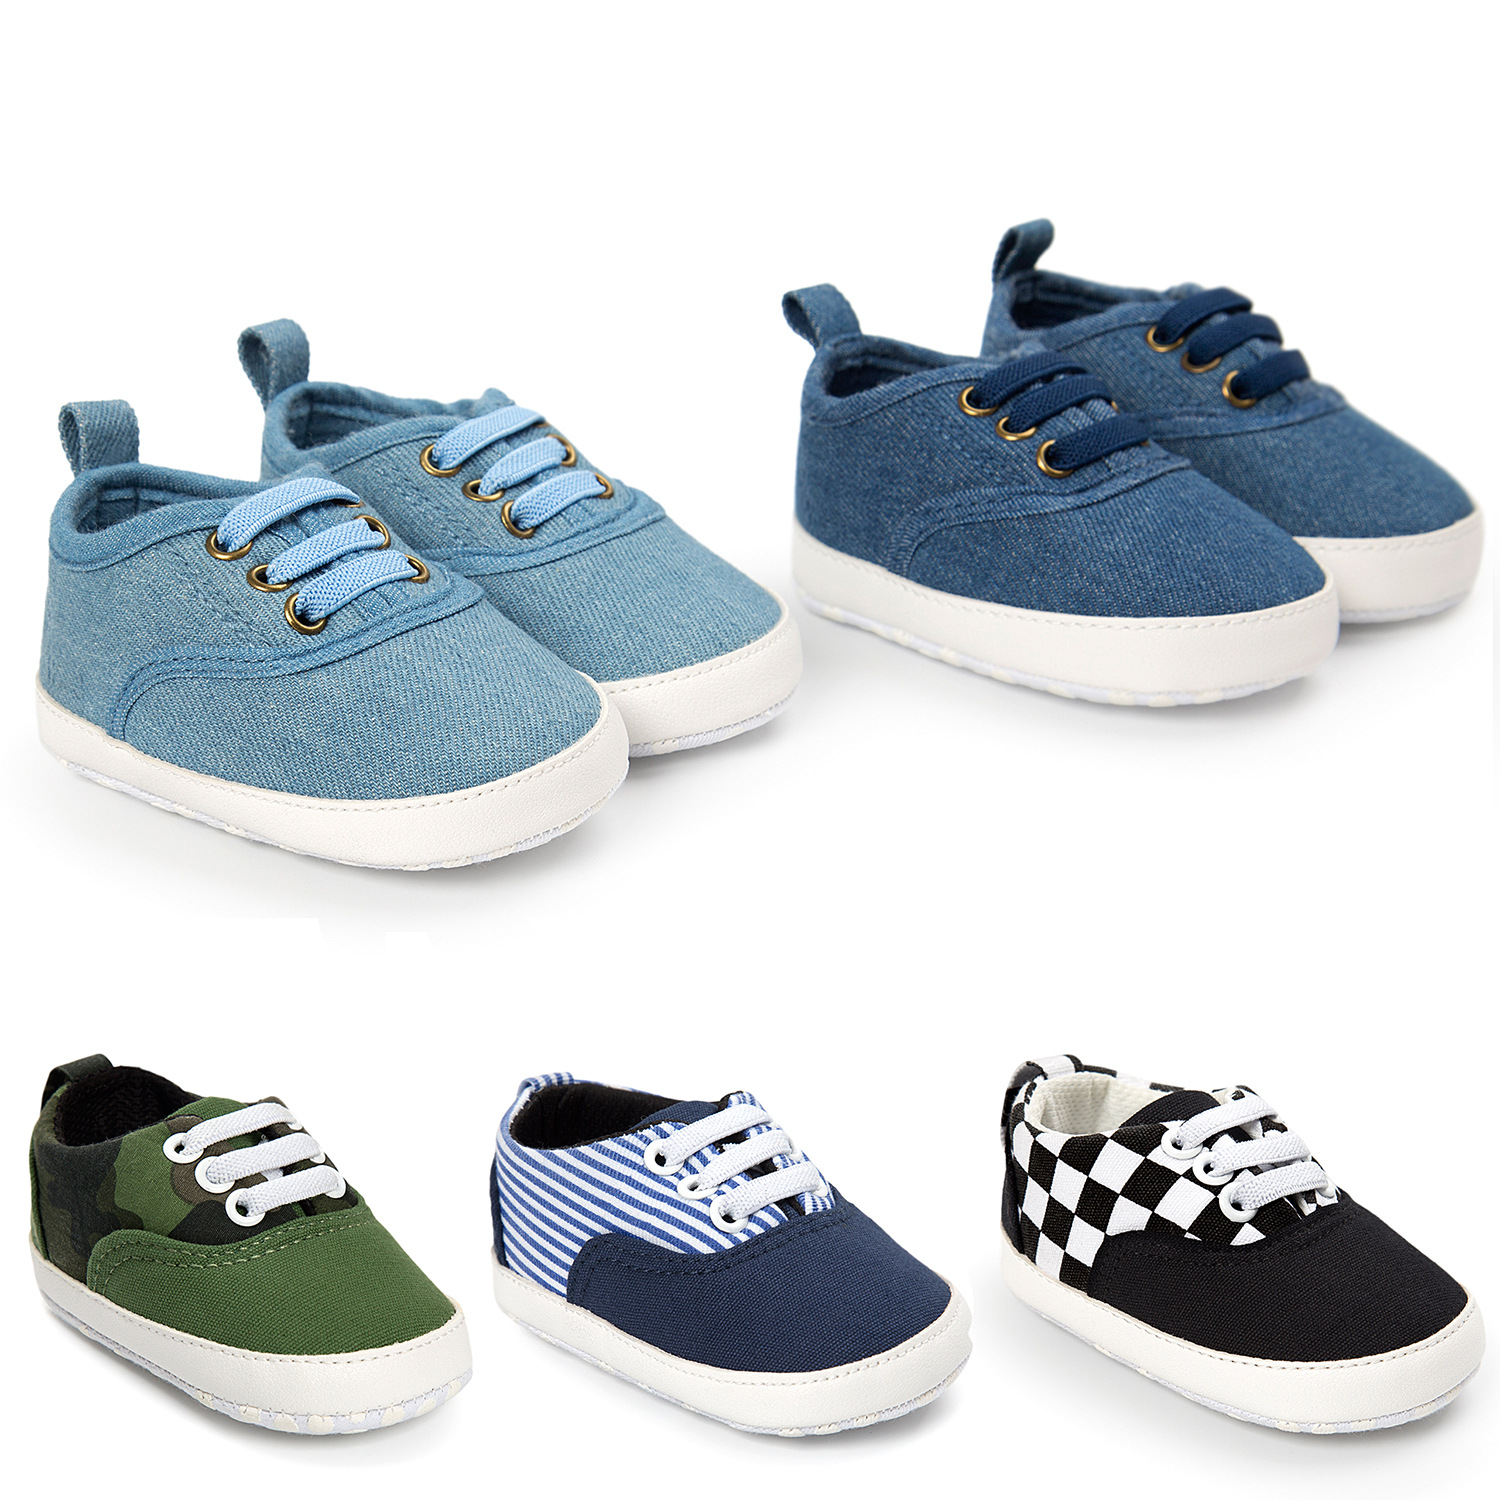 ROMIRUS Brand Design Spring Autumn Baby Shoes Boy Casual Canvas